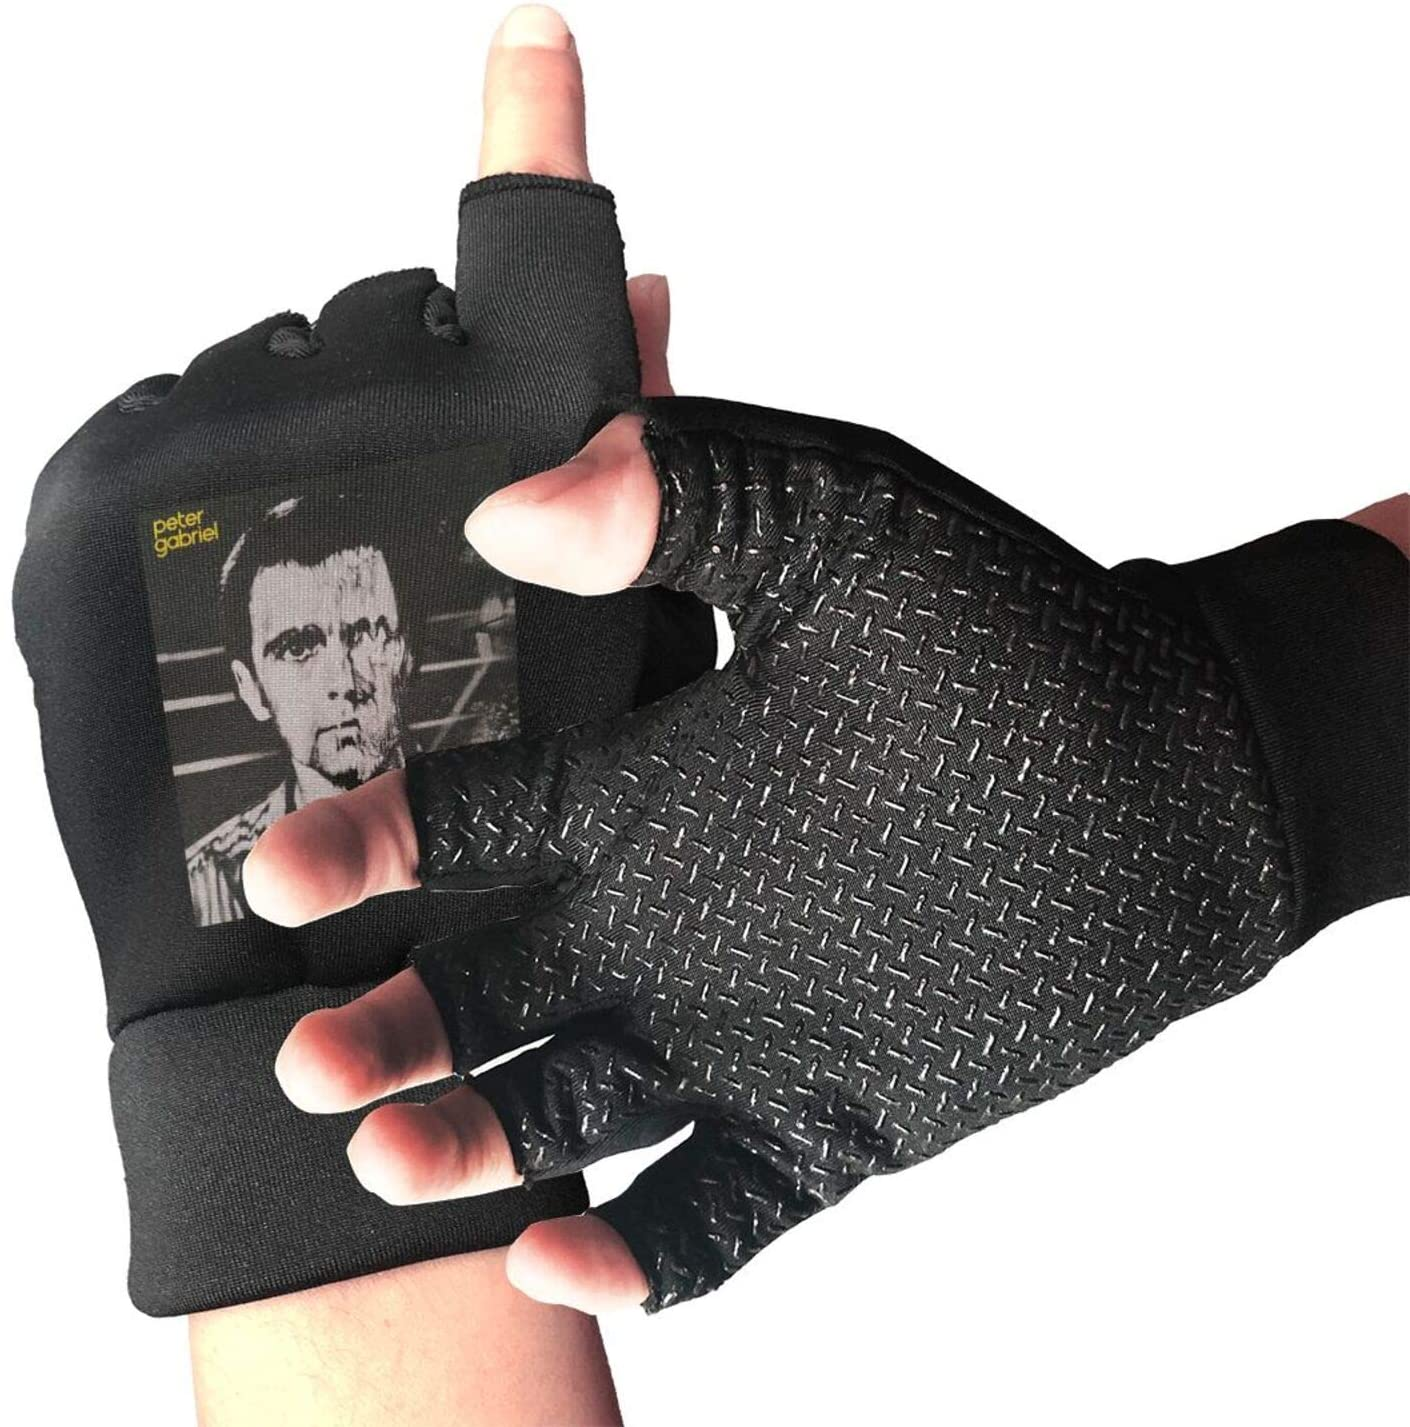 Peter Gabriel Half Finger Outdoor Non-Slip Shock-Absorbing Gloves Fit for Cycling Airsoft Paintball Motorcycle Hiking